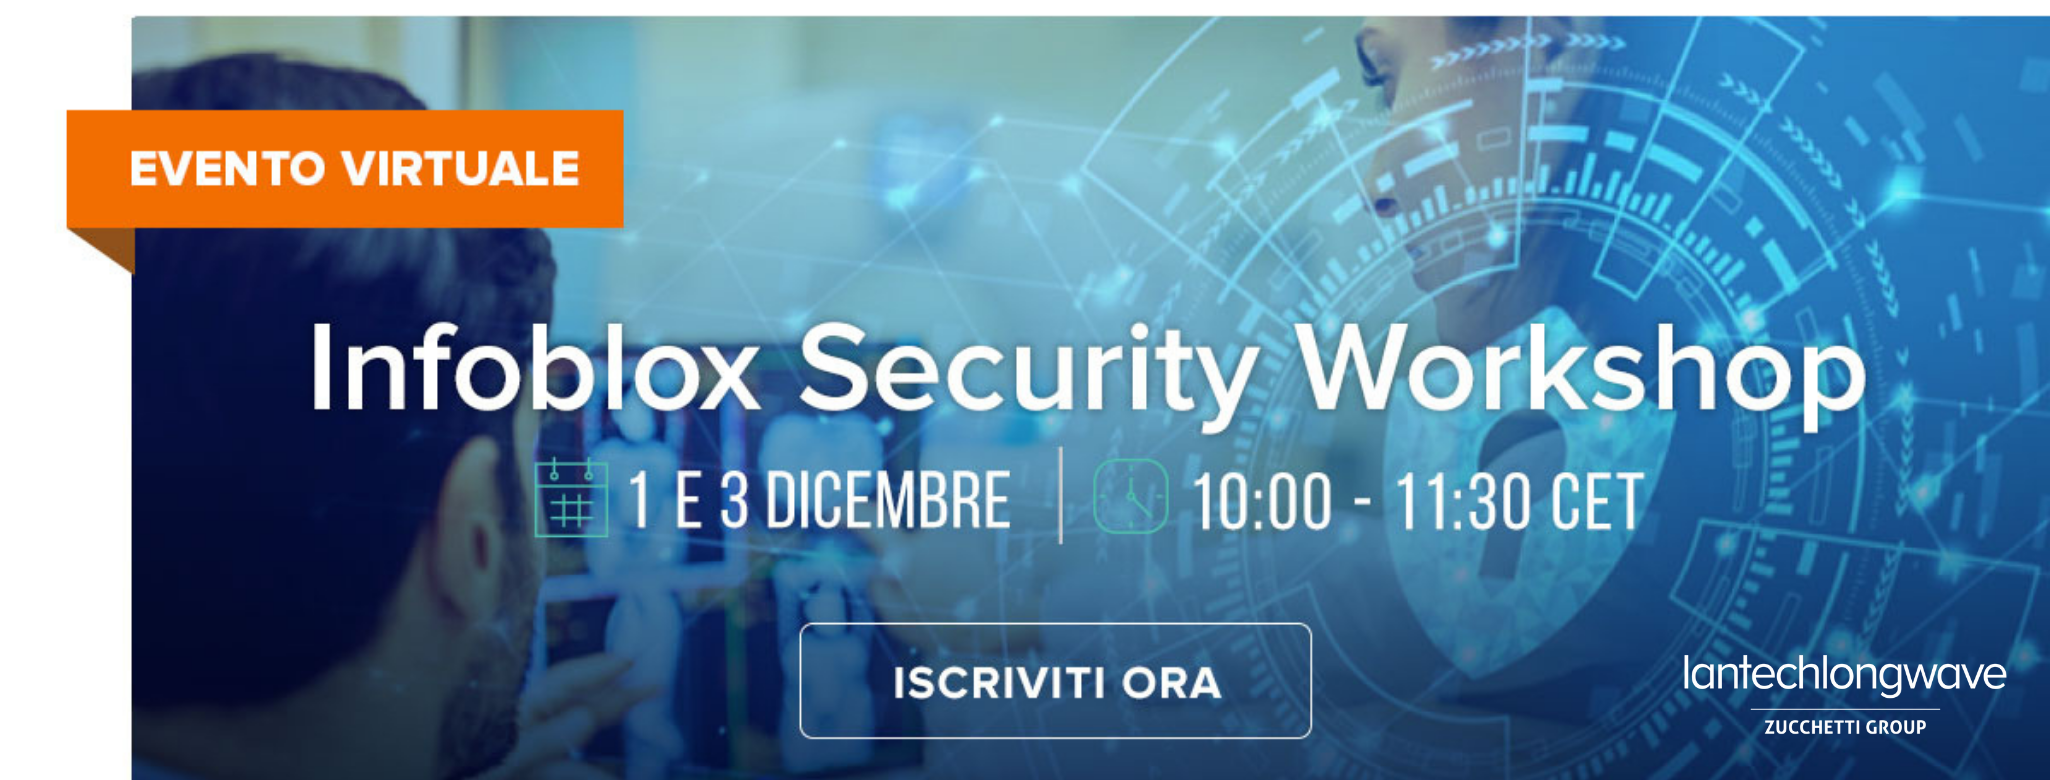 1 e 3 dicembre: Infoblox Security Workshop